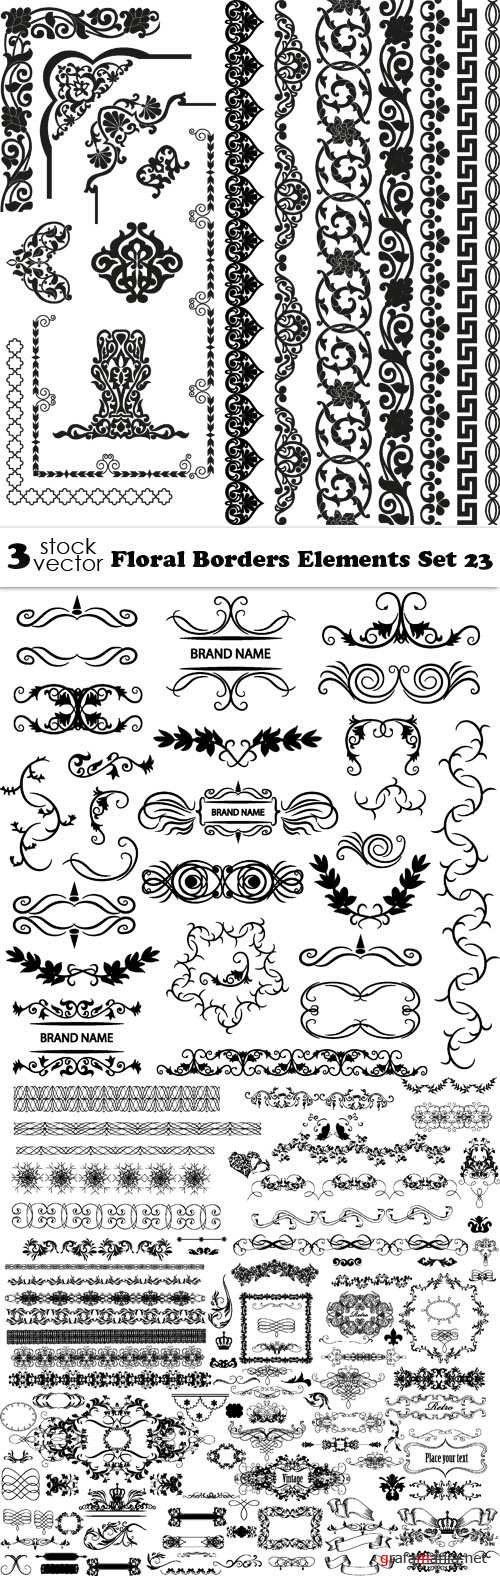 Vectors - Floral Borders Elements Set 23